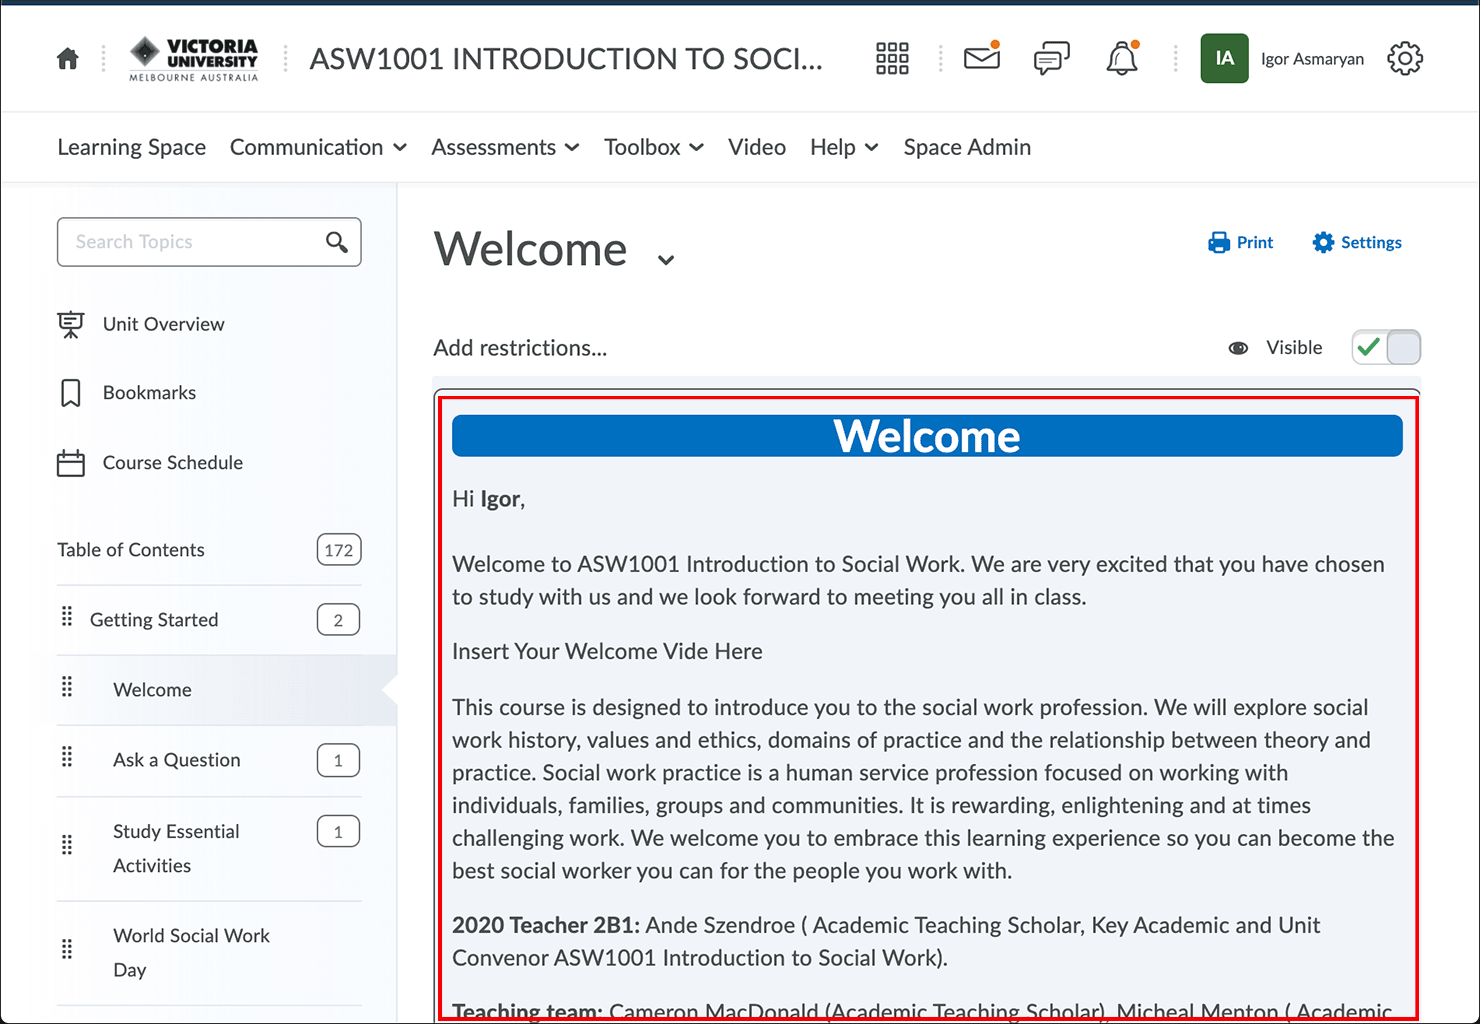 Click anywhere within the Welcome text area to edit the content